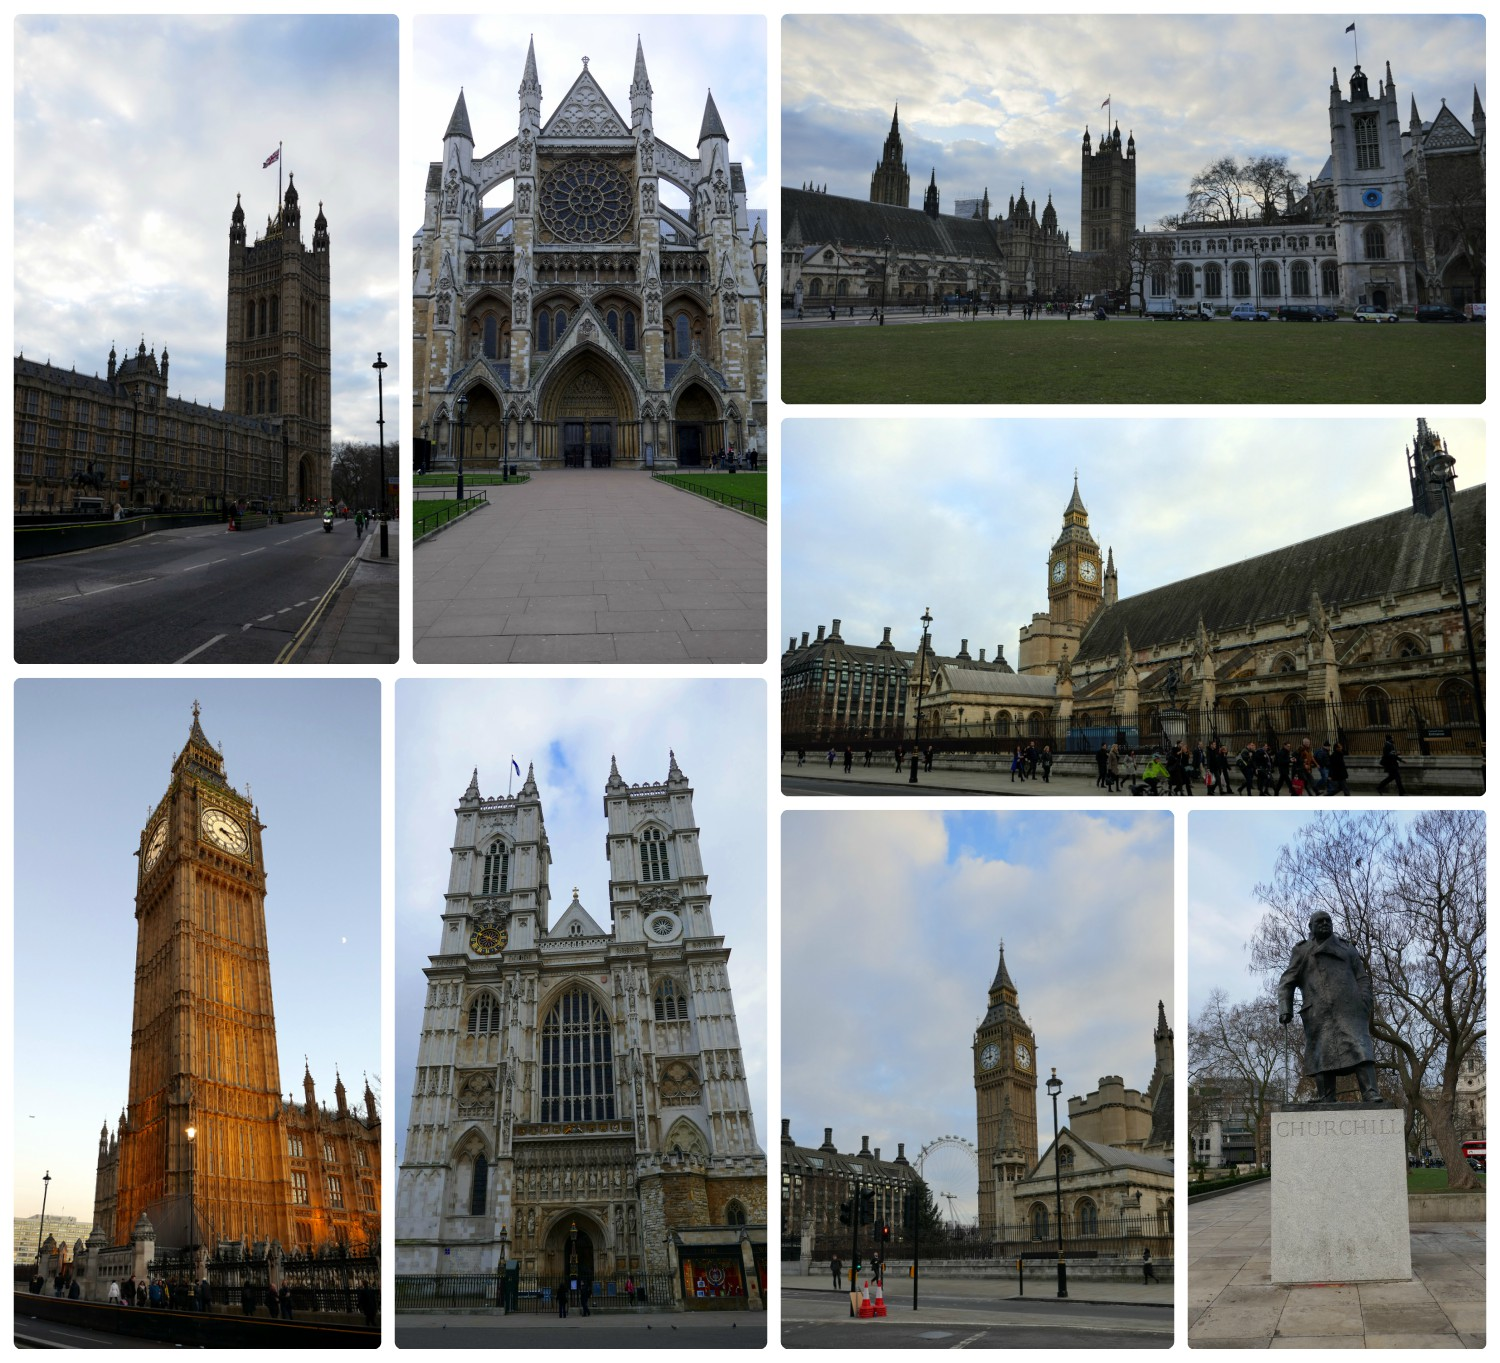 Our first sights of city center London, United Kingdom were breathtaking!